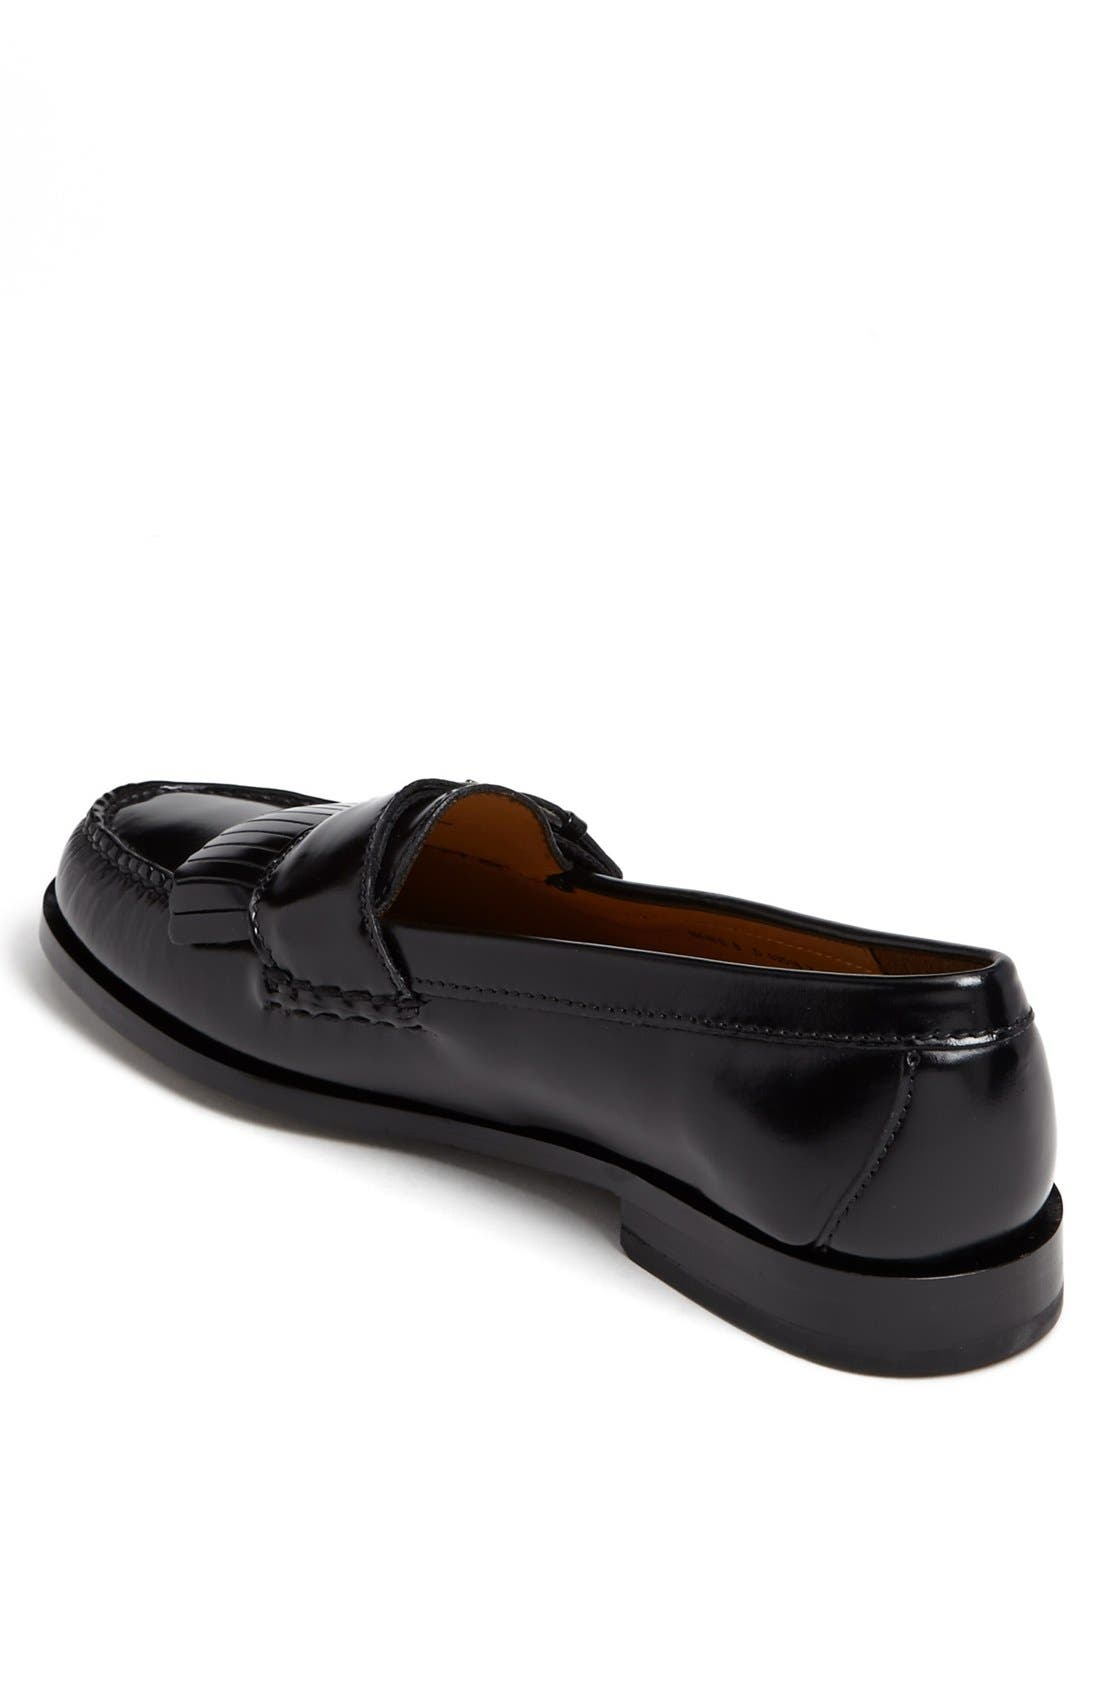 Alternate Image 2  - Cole Haan 'Pinch Buckle' Loafer   (Men)